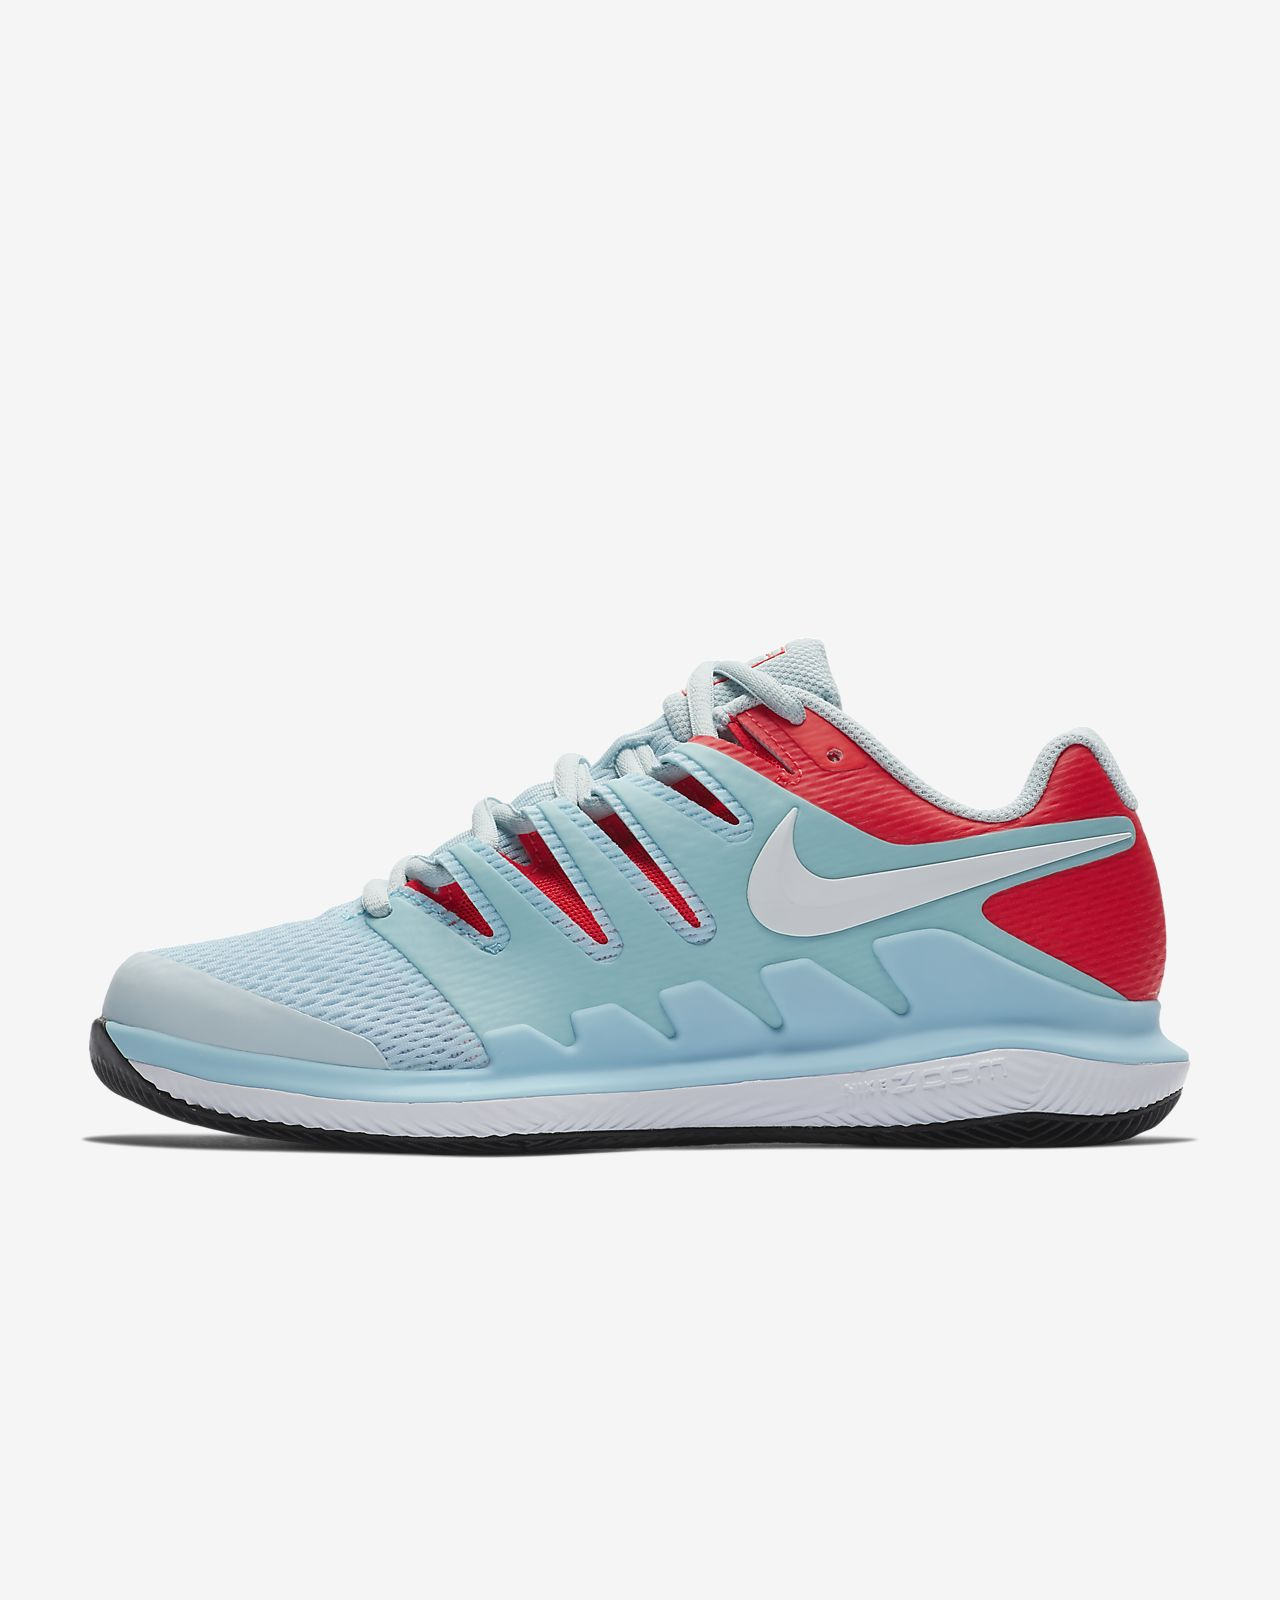 new arrivals 4f416 80d9c ... Scarpa da tennis per campi in cemento NikeCourt Air Zoom Vapor X - Donna